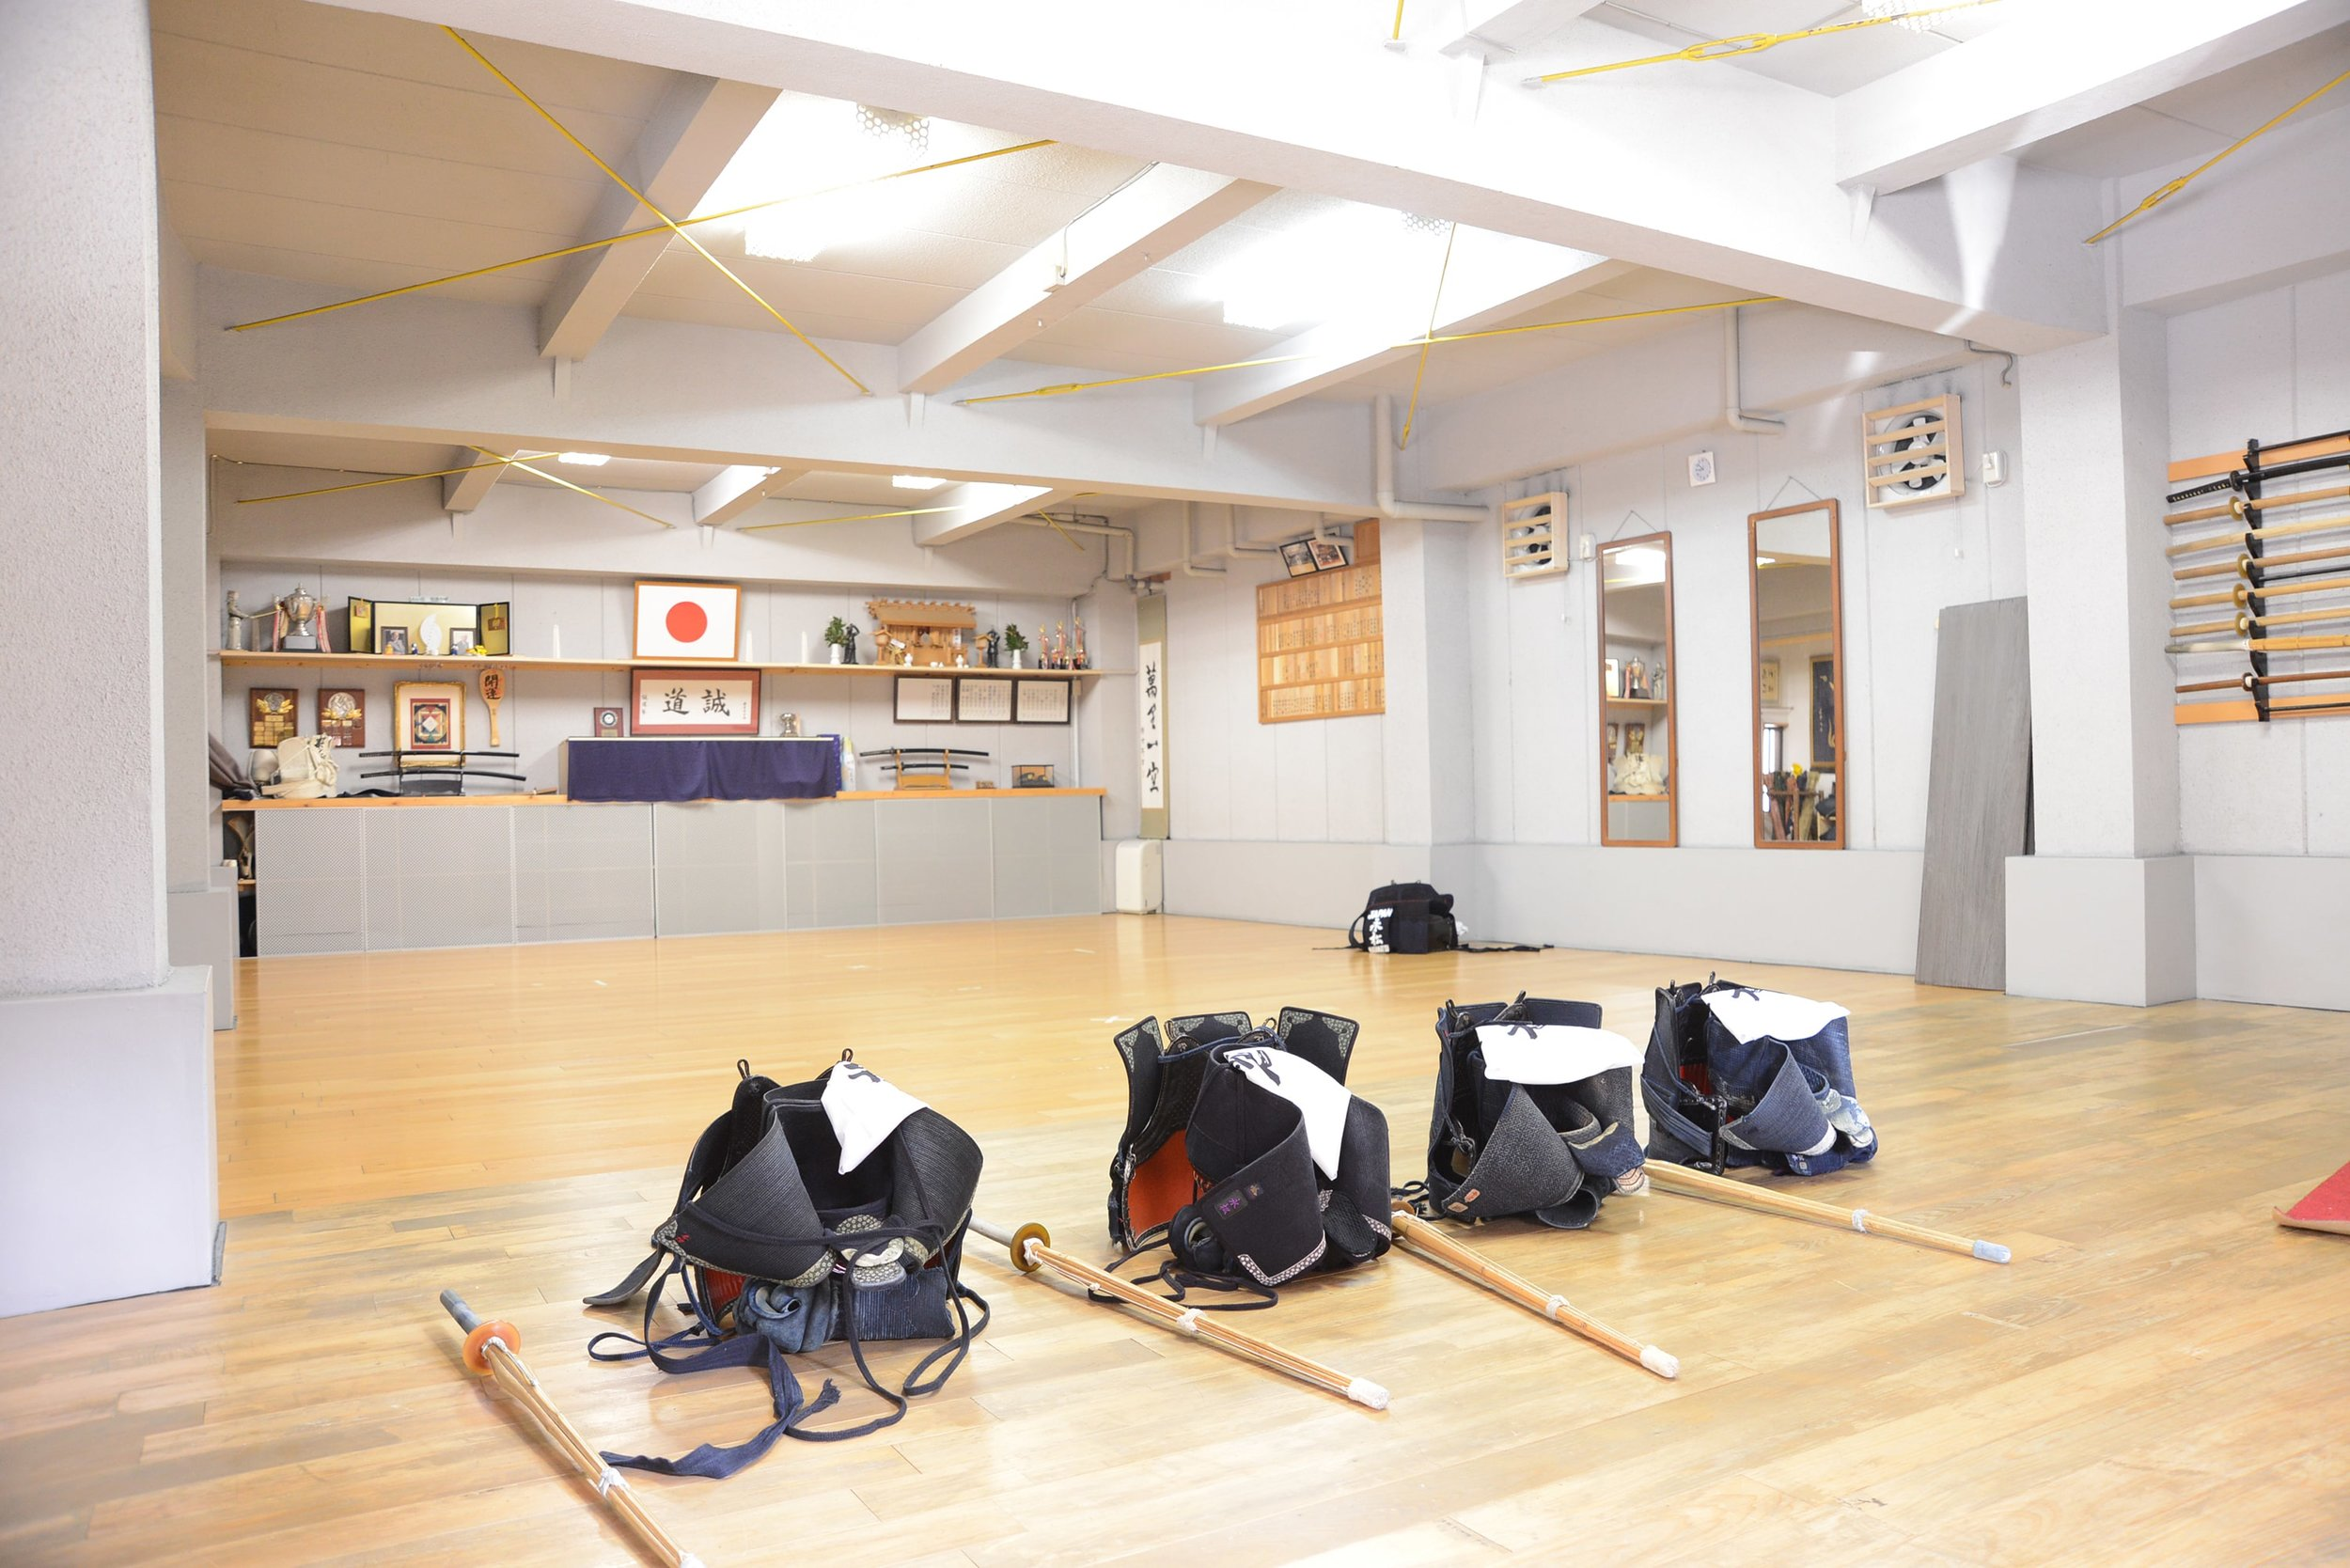 Storage and maintenance of  bogu  are universal tasks for all kendo athletes.